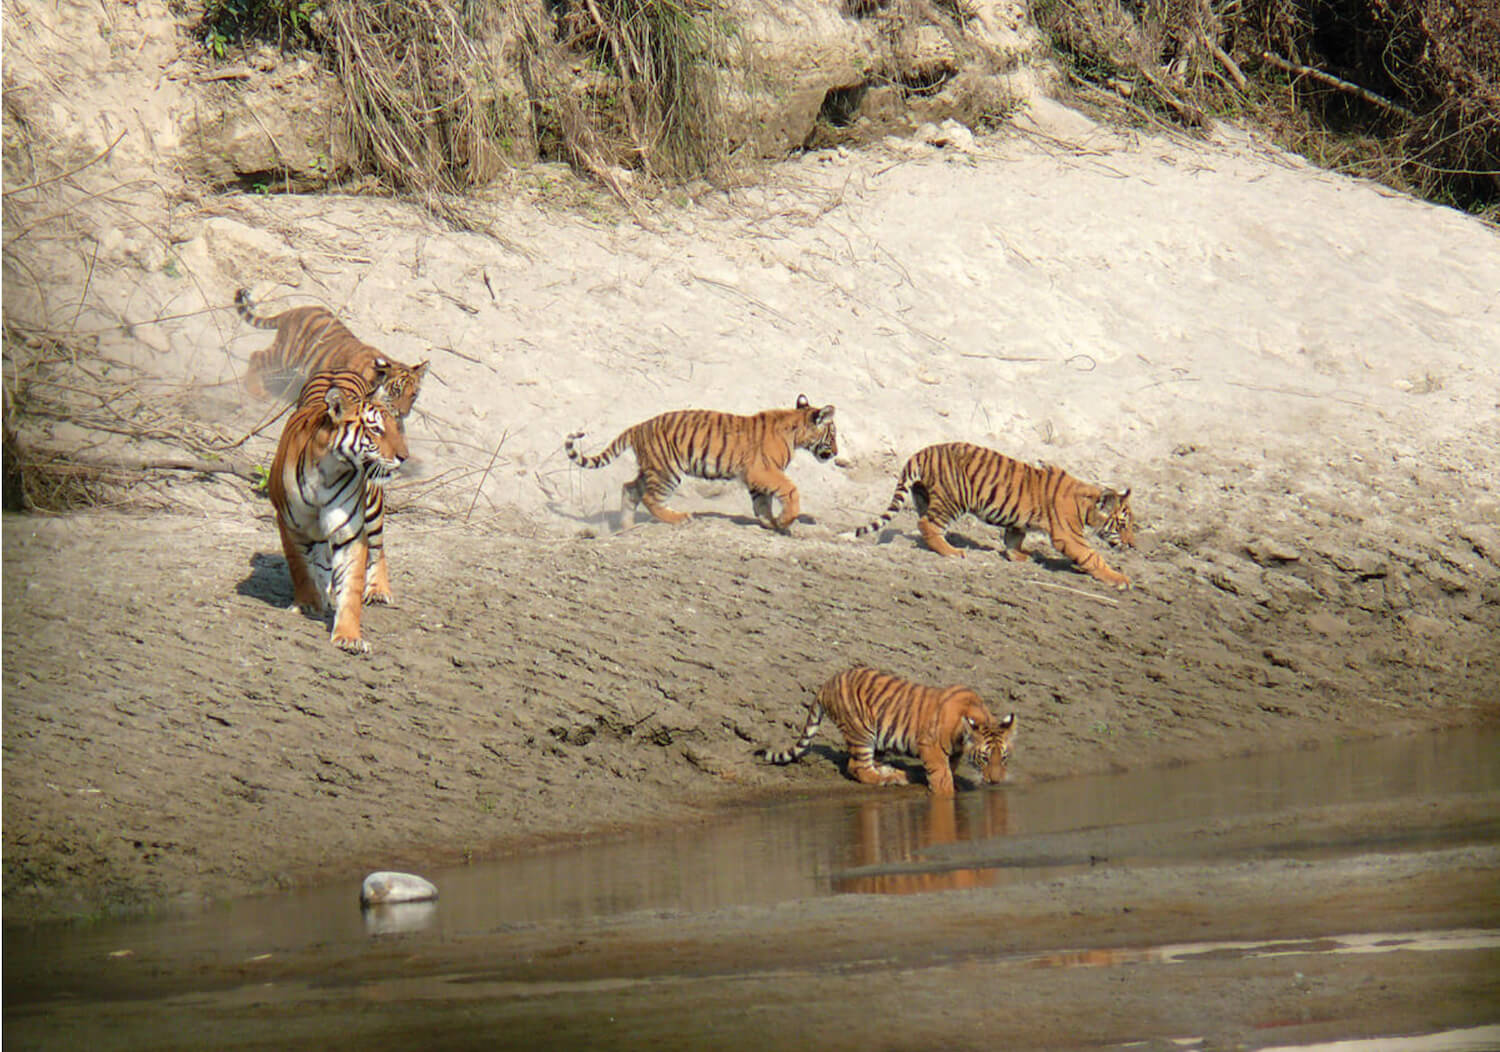 Chitwan can accommodate more tigers